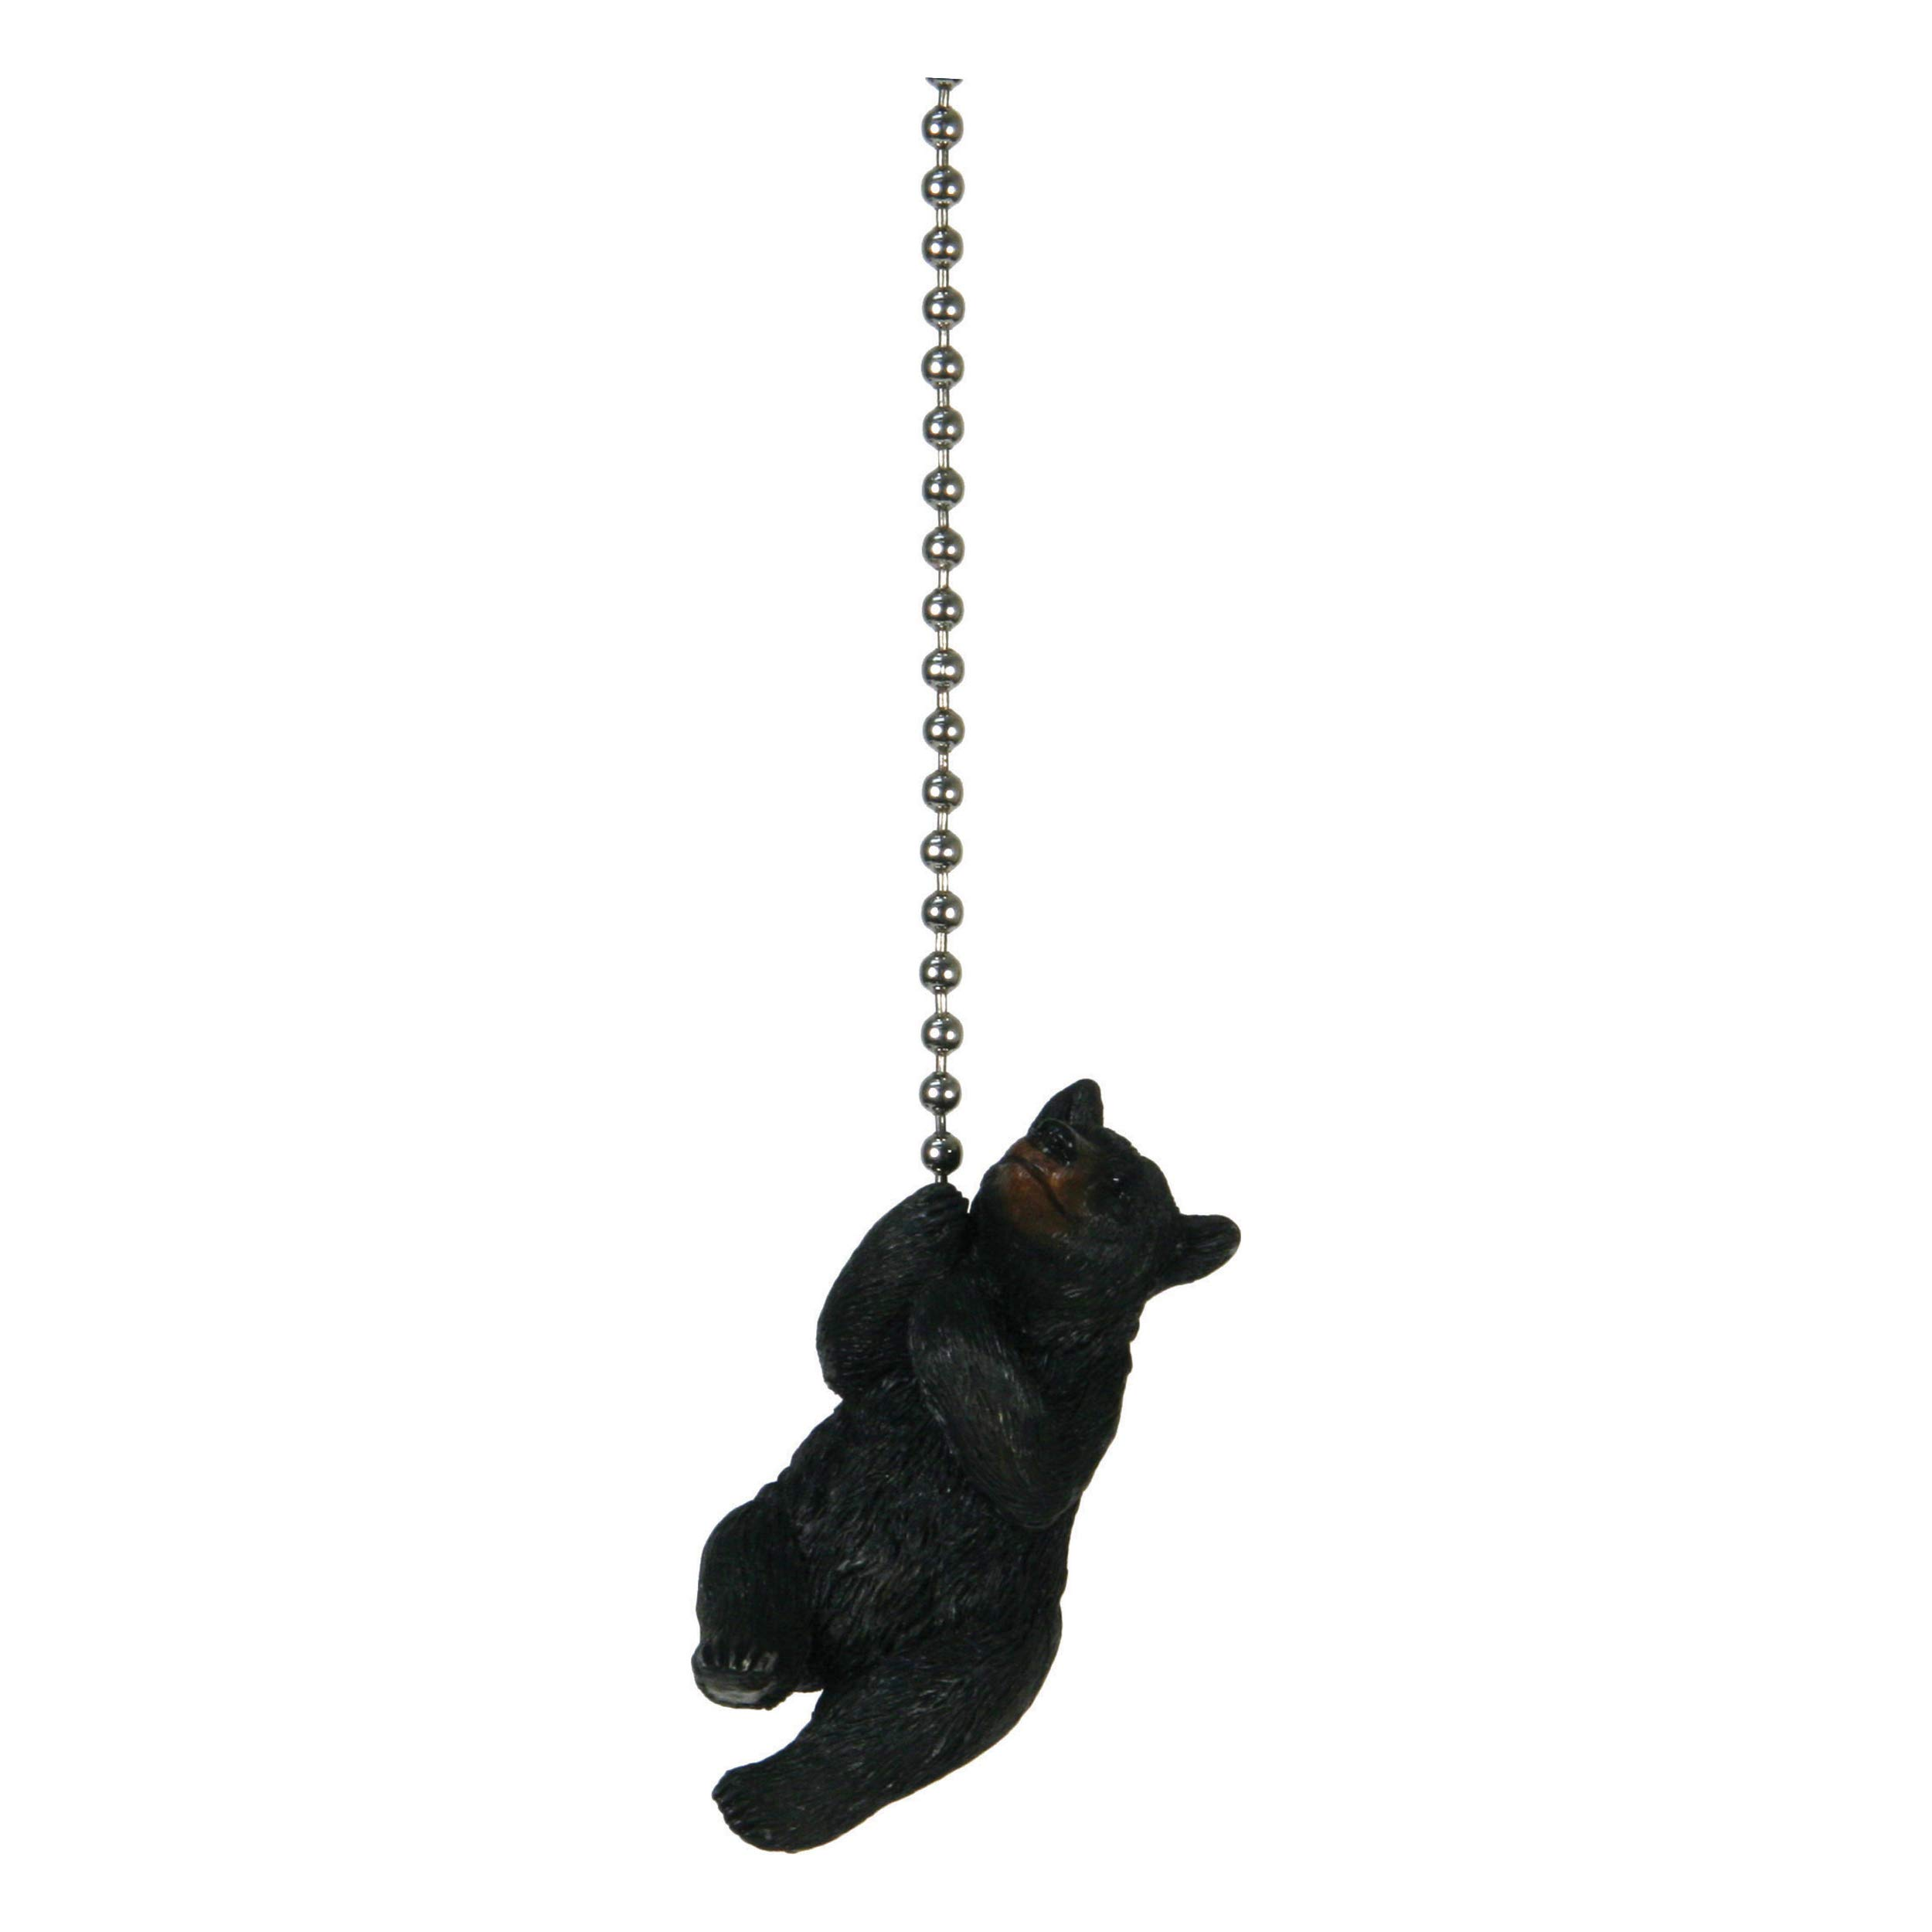 River S Edge Products Black Bear Ceiling Fan Pull Ornament With 12 Inch Chain Wildlife Lighting Decor Buy Online In South Africa At Desertcart Co Za Productid 1771441